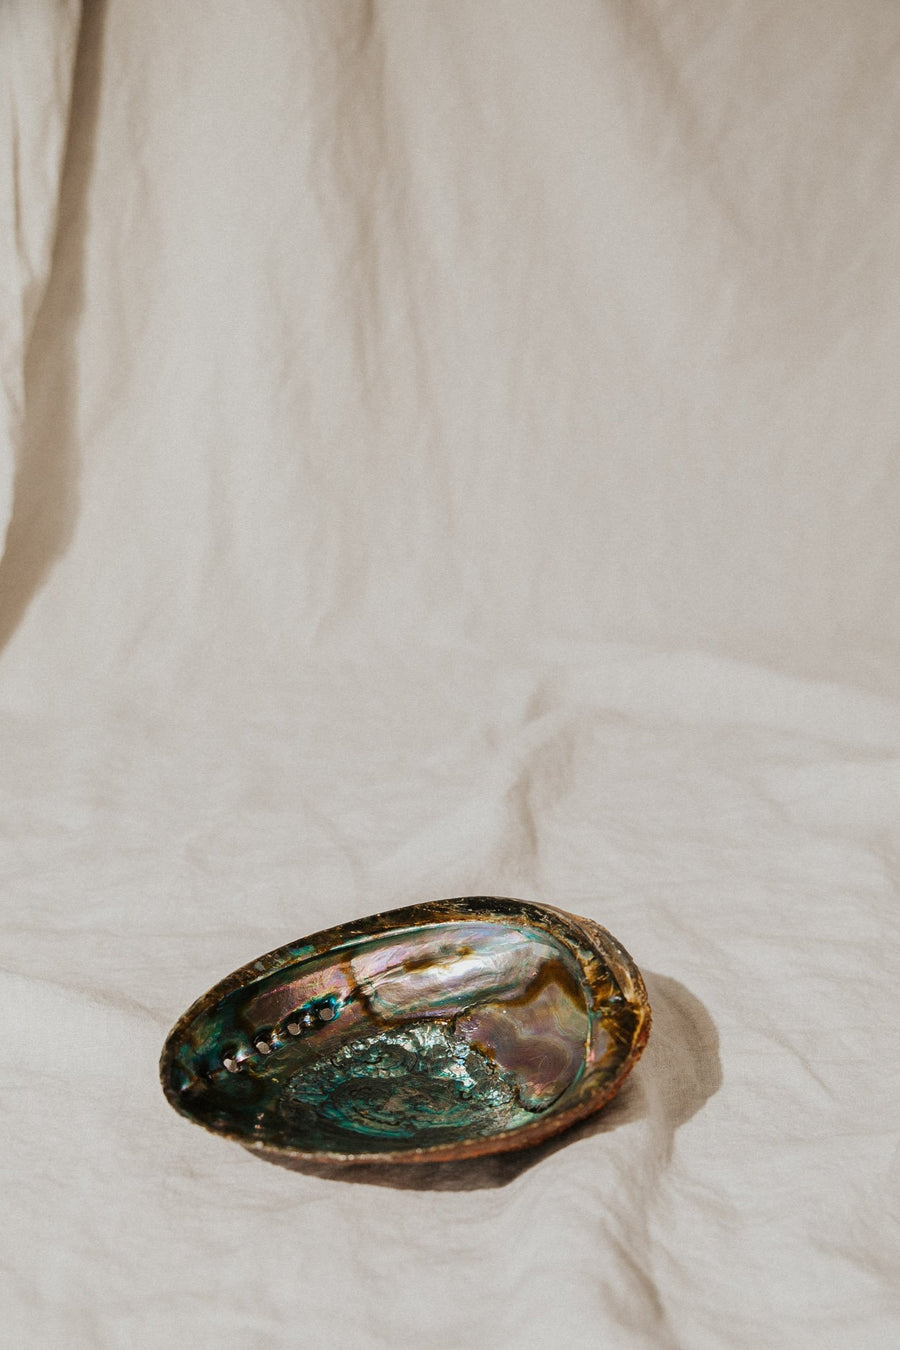 om imports Objects Treasured Things Abalone Offering Bowl